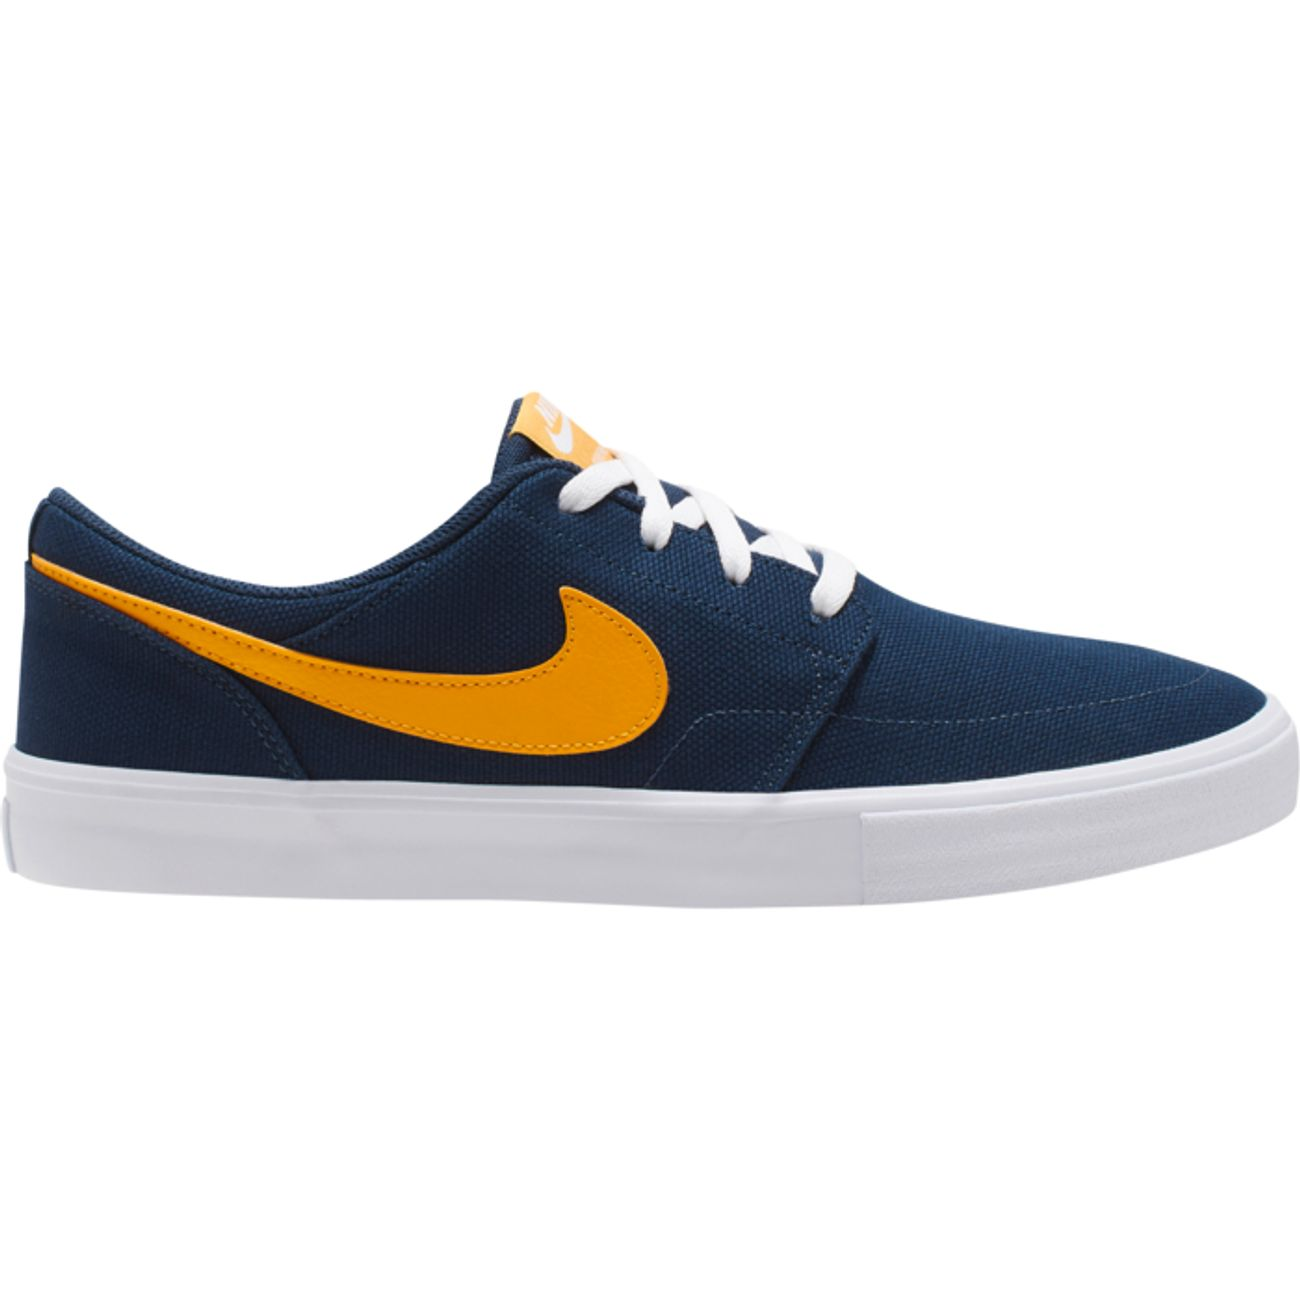 CHAUSSURES BASSES Loisirs homme NIKE SB PORTMORE II SOLAR CNVS